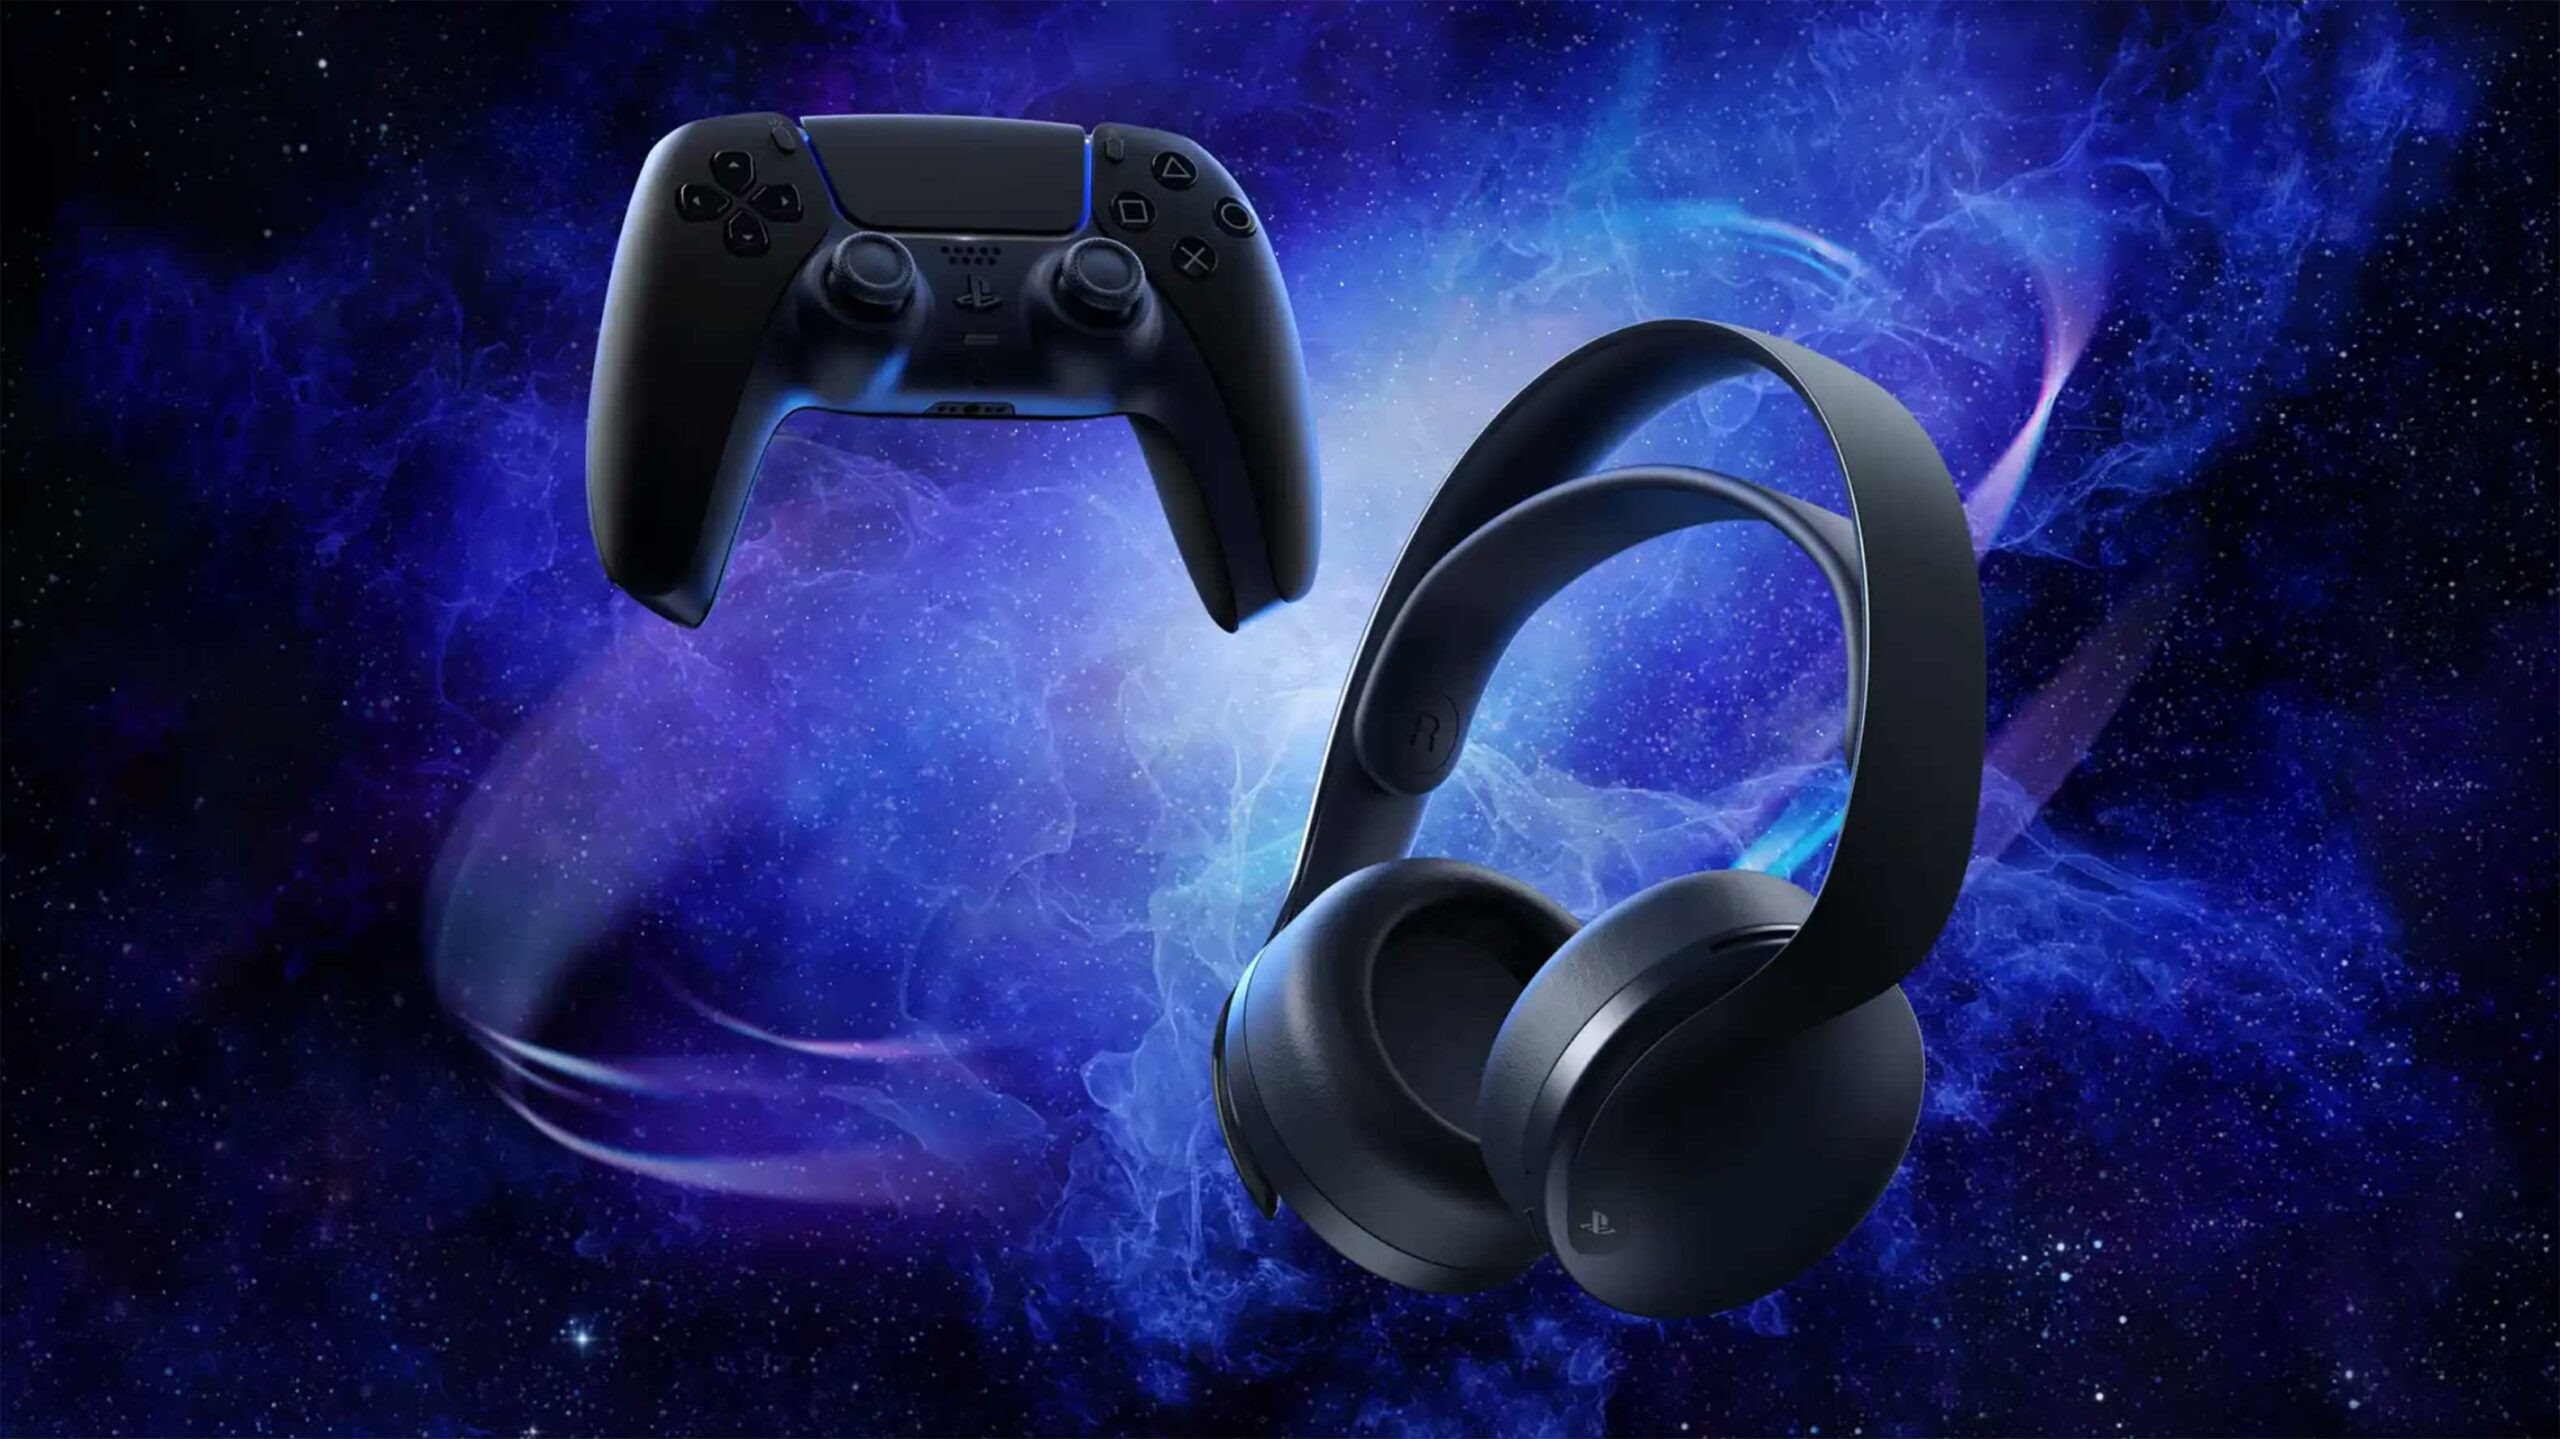 PlayStation reveals 'Midnight Black' Pulse 3D headset for PS5